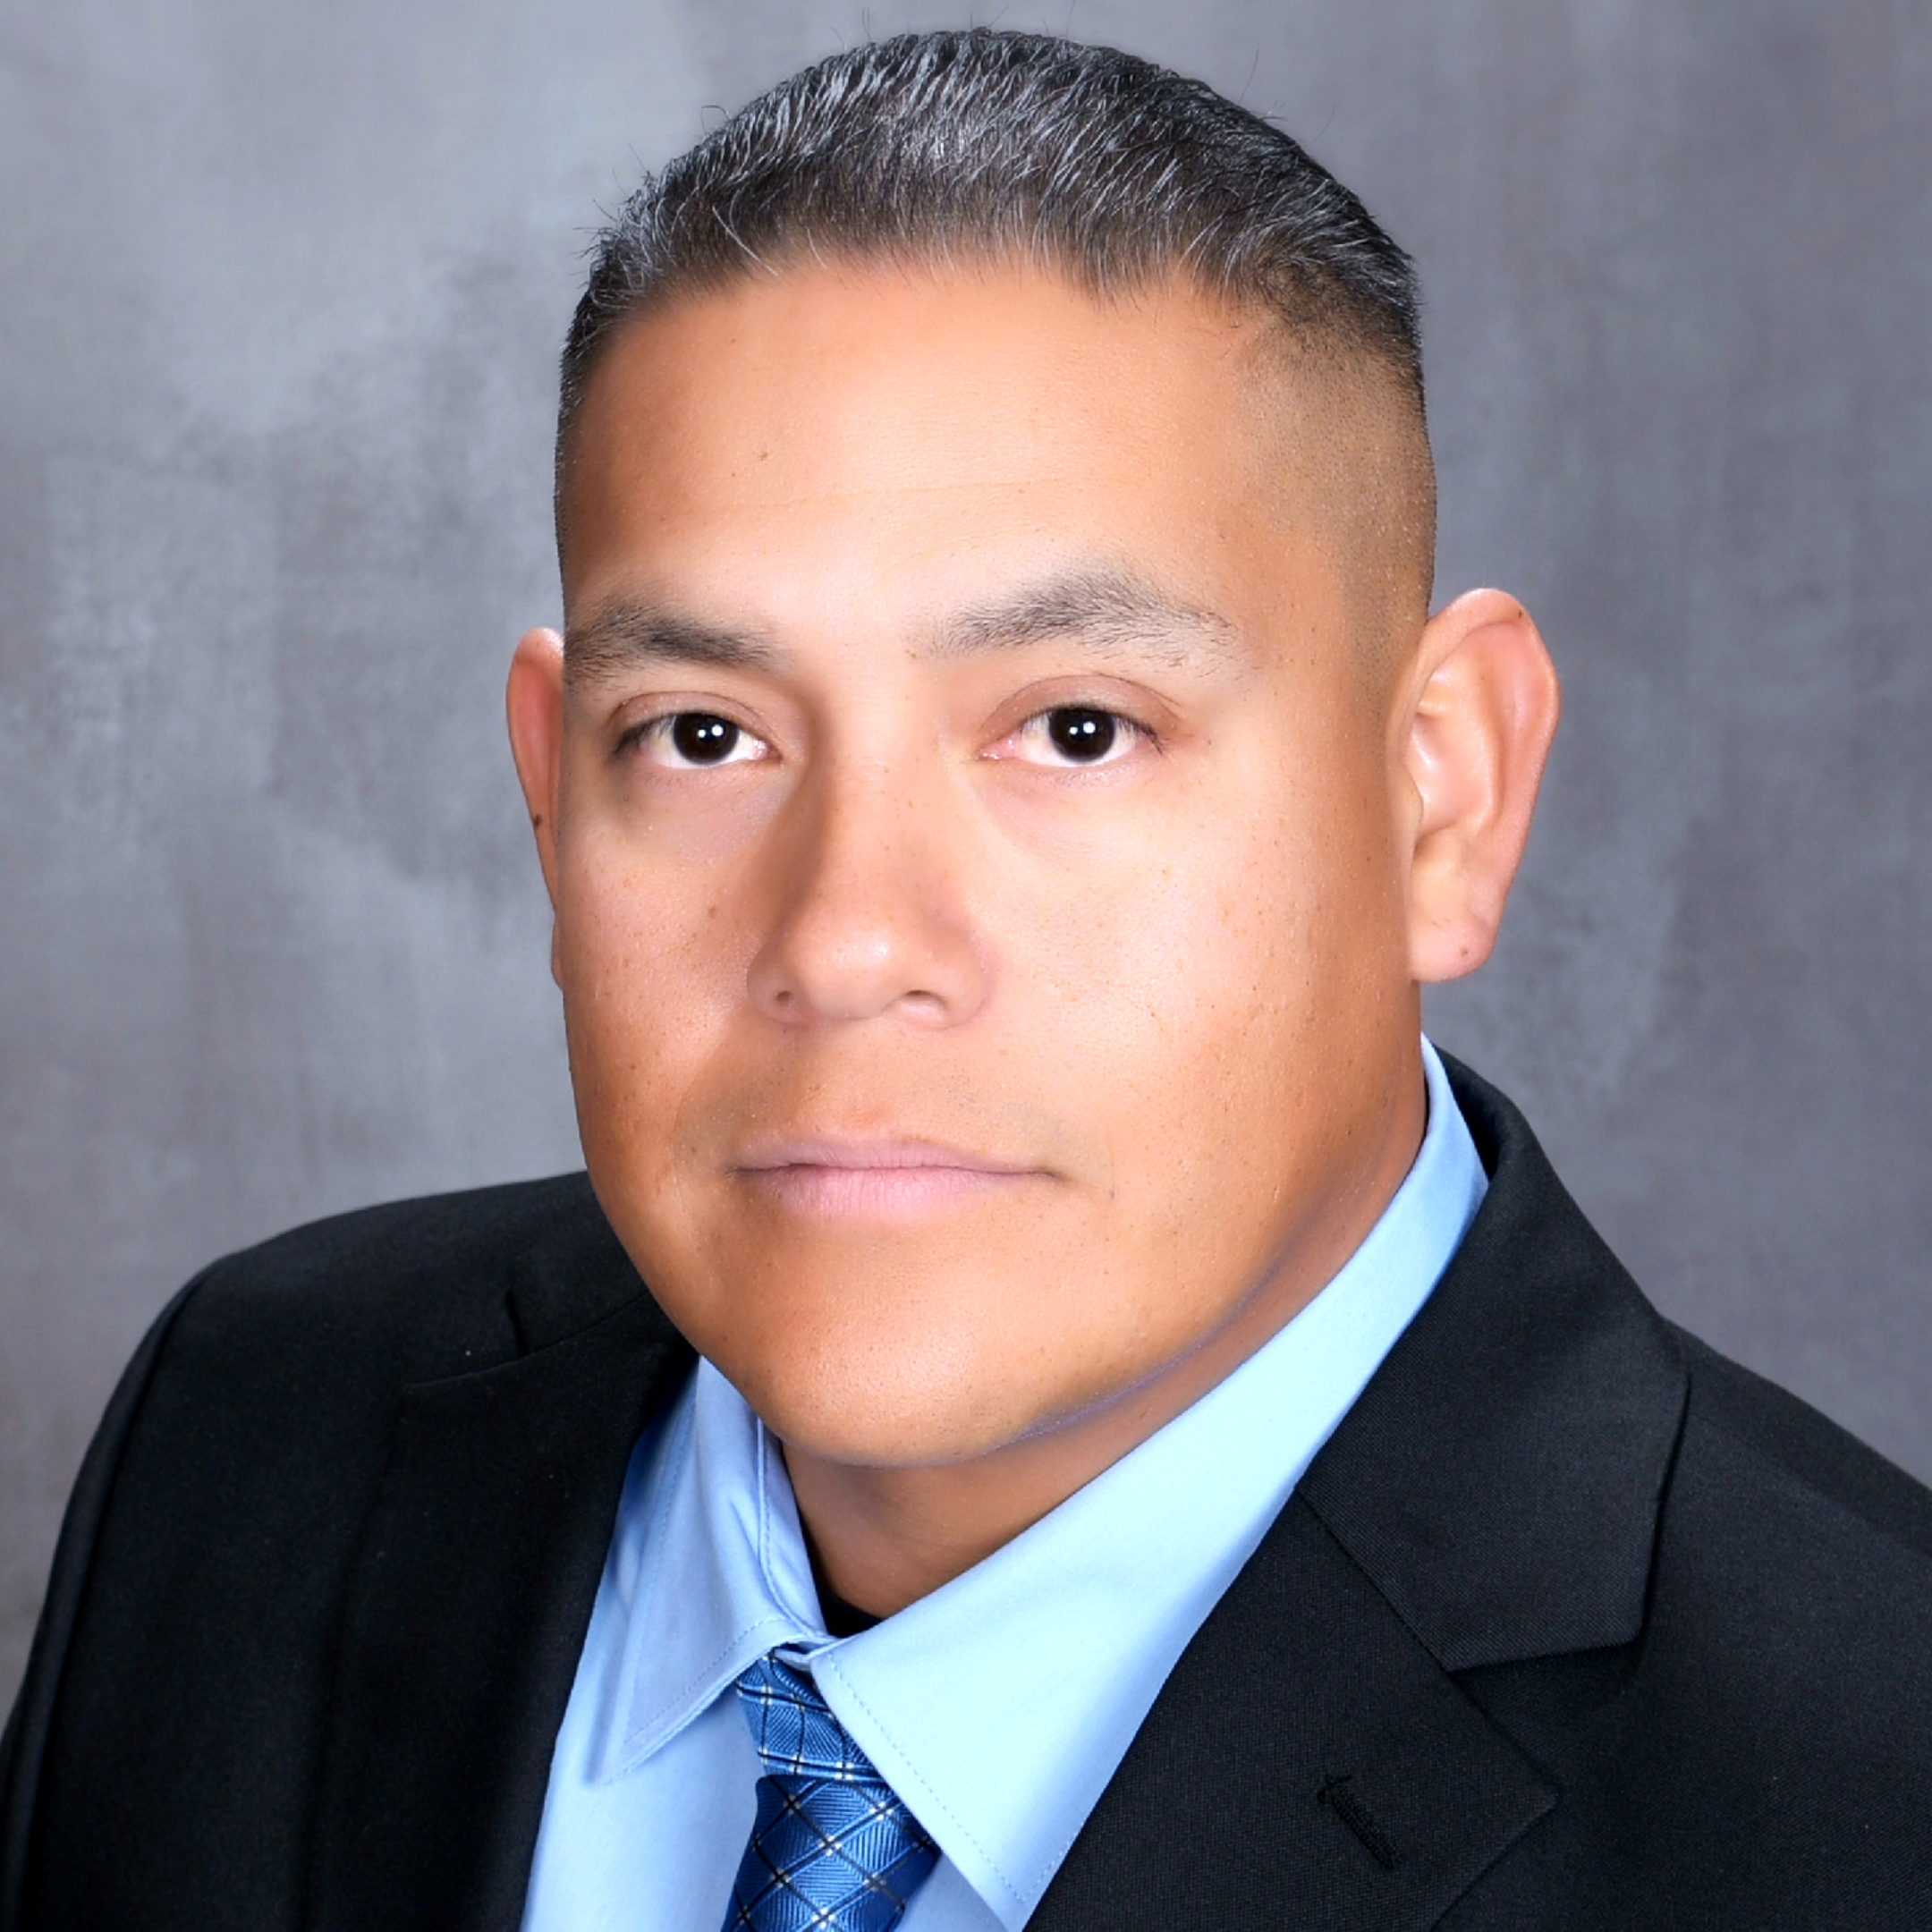 Johnny Romero | Health and Life Insurance Agent | Greenwood Village, CO 80111